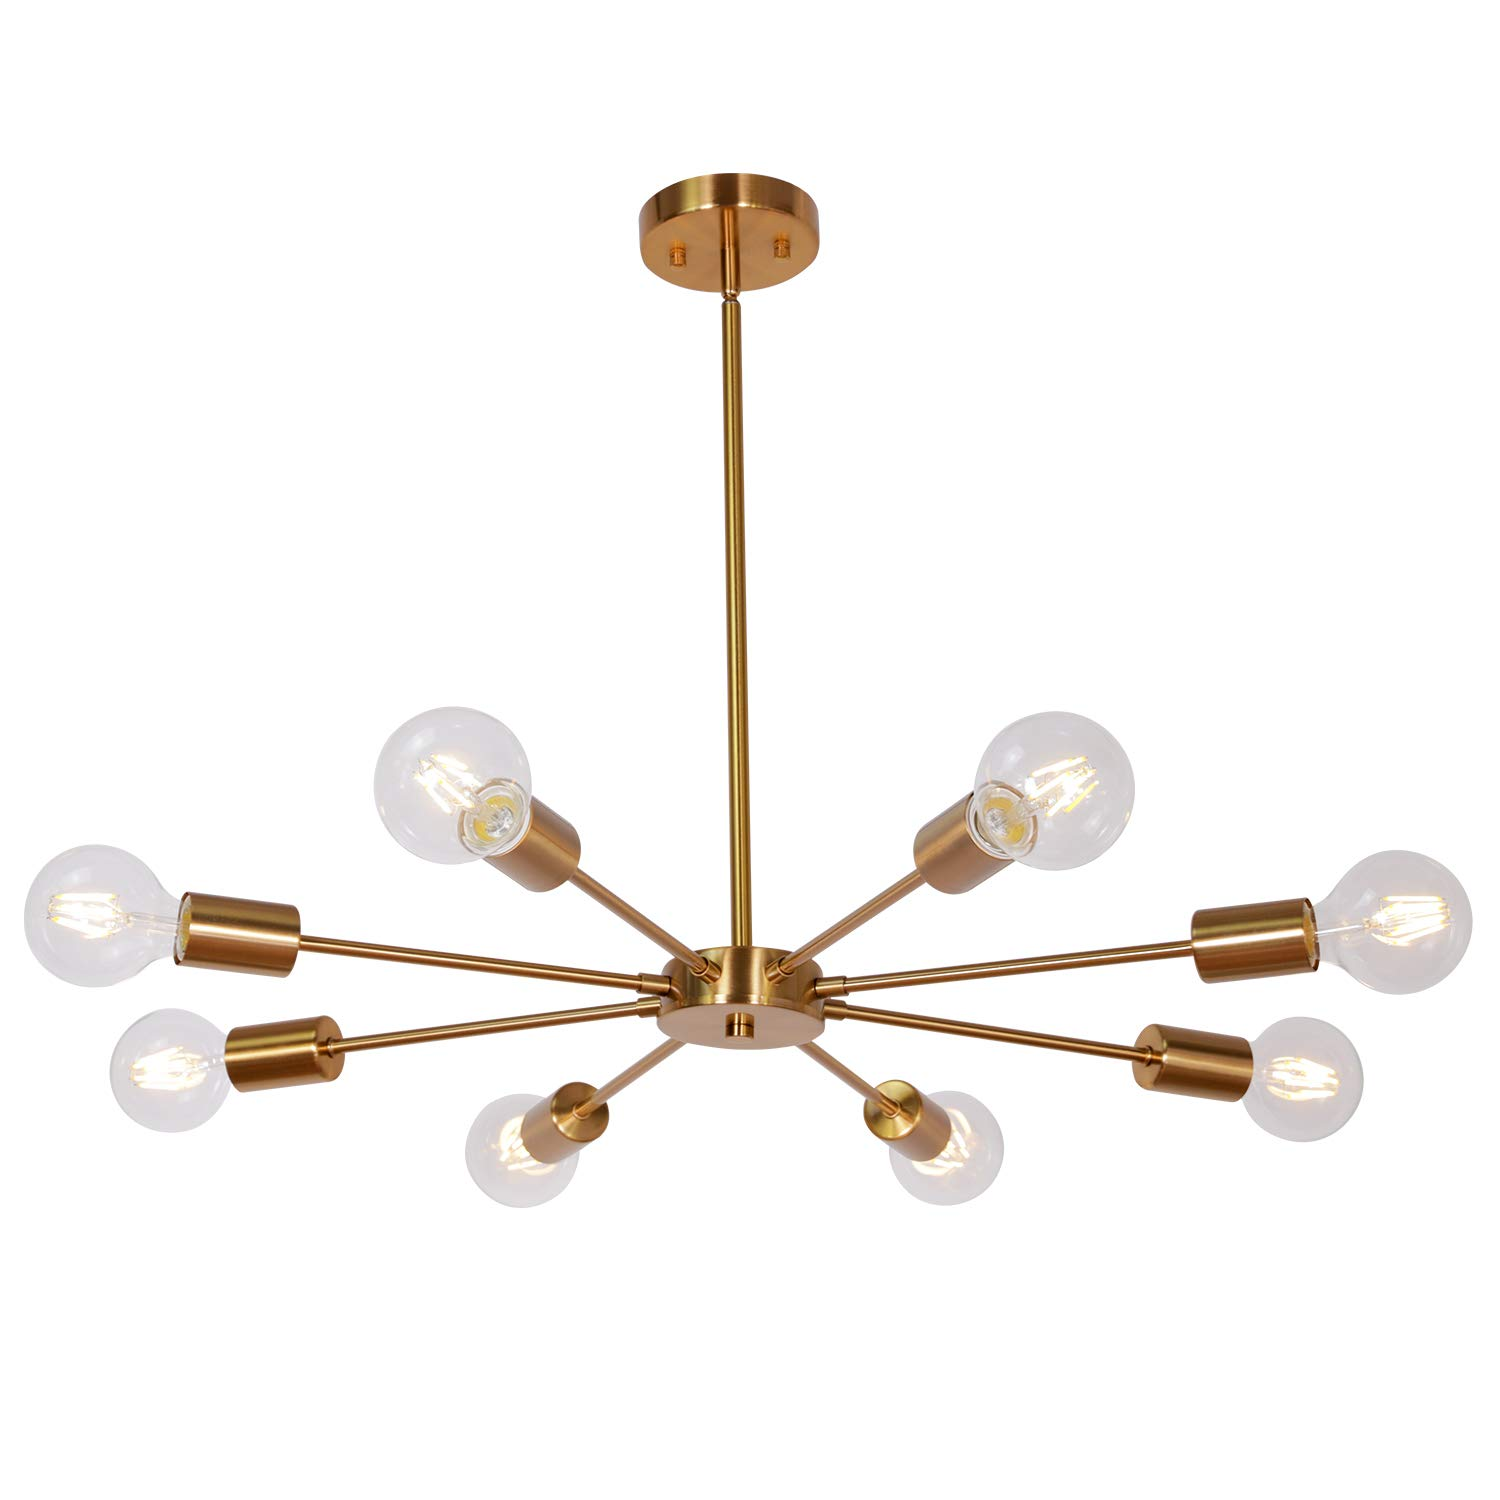 Sputnik Chandelier Brass 8 Lights, Semi Flush Mount Ceiling Light Mid Century Modern Pendant Light for Foyer Dining Room Bedroom Restaurant UL Listed by MELUCEE